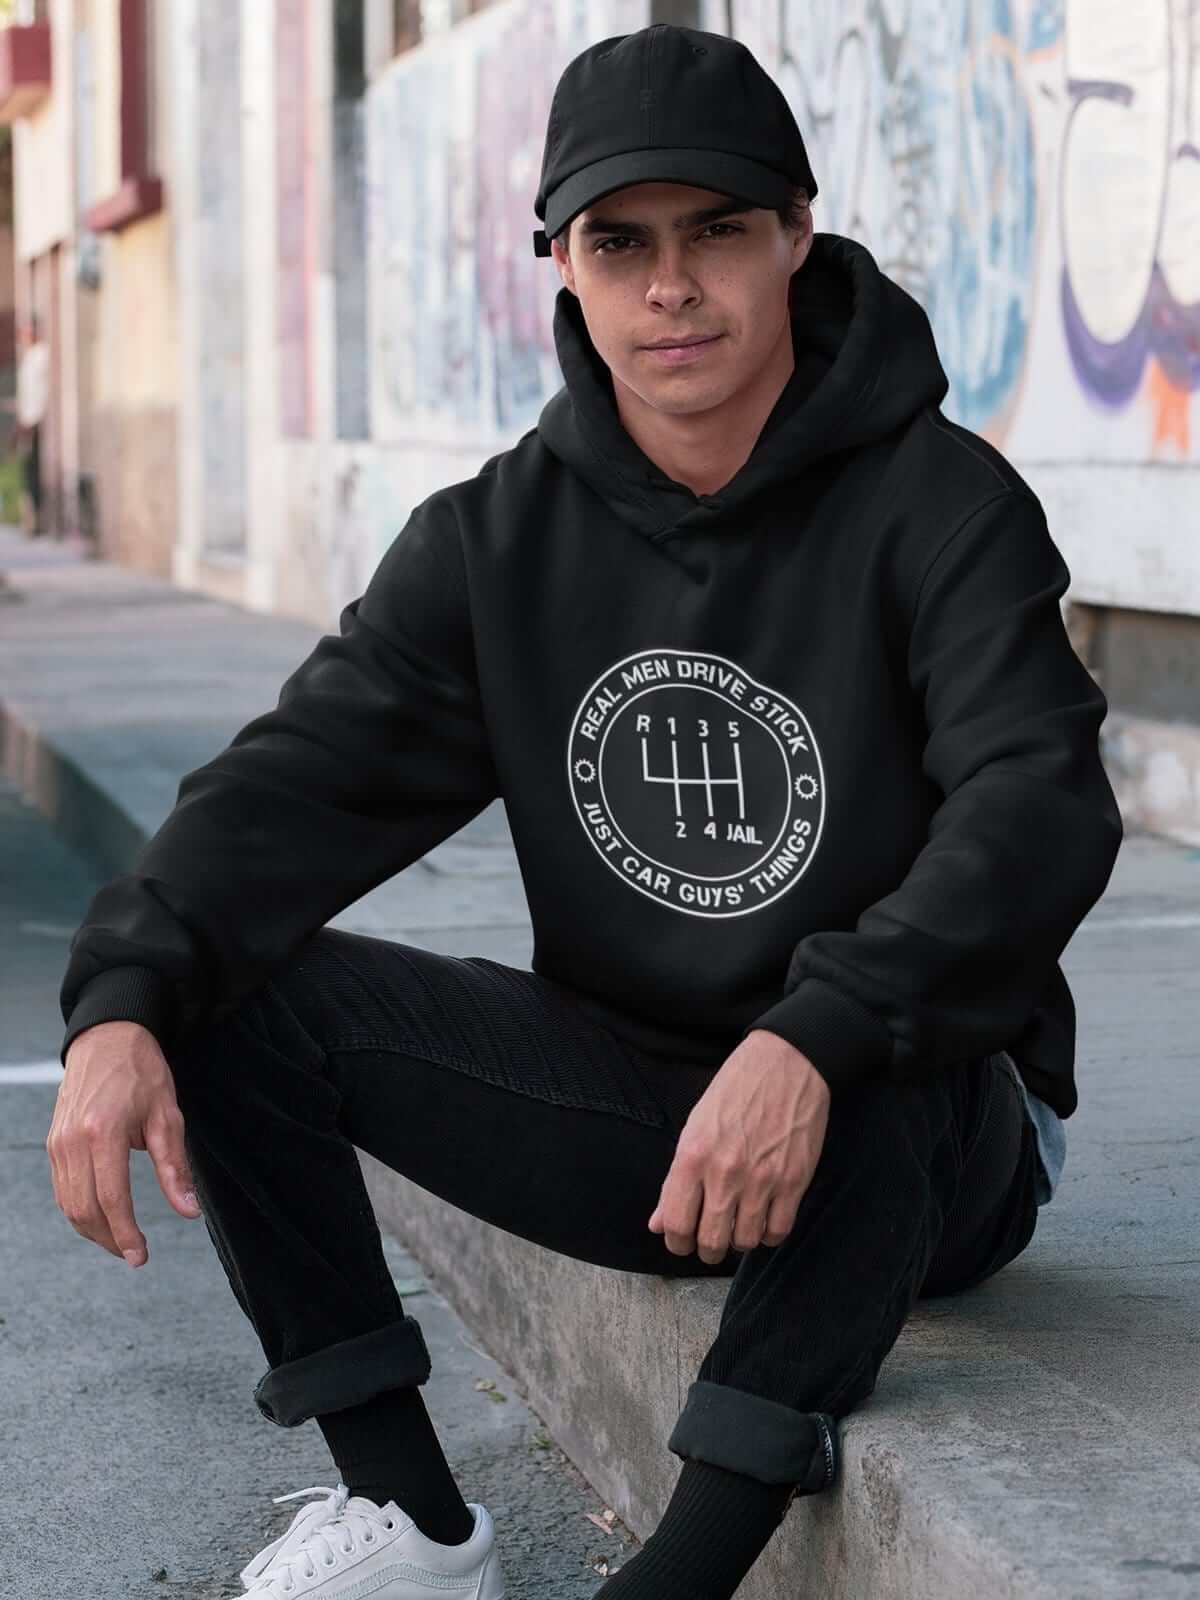 real-men-drive-stick-black-car-hoodie_-save-the-manuals-hooded-sweatshirt_-car-fans_-car-guys_-car-lovers_-car-enthusiast.jpg